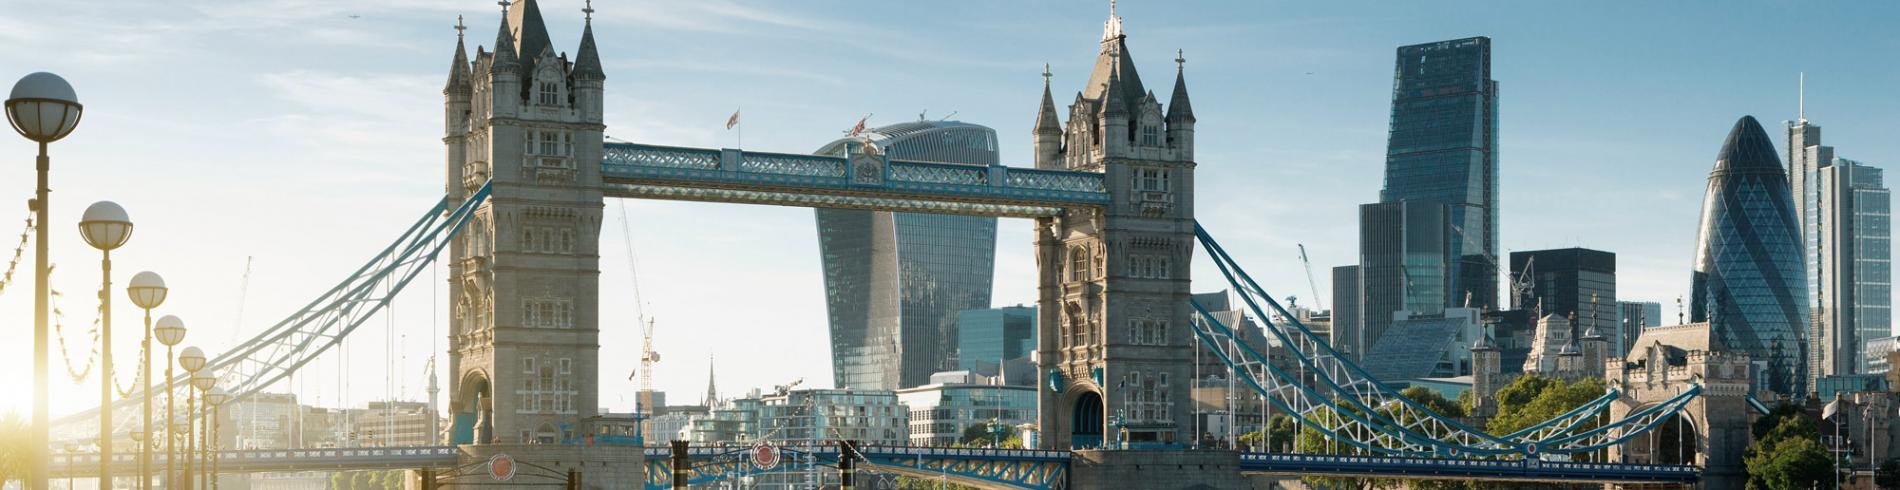 Tower Bridge in the morning